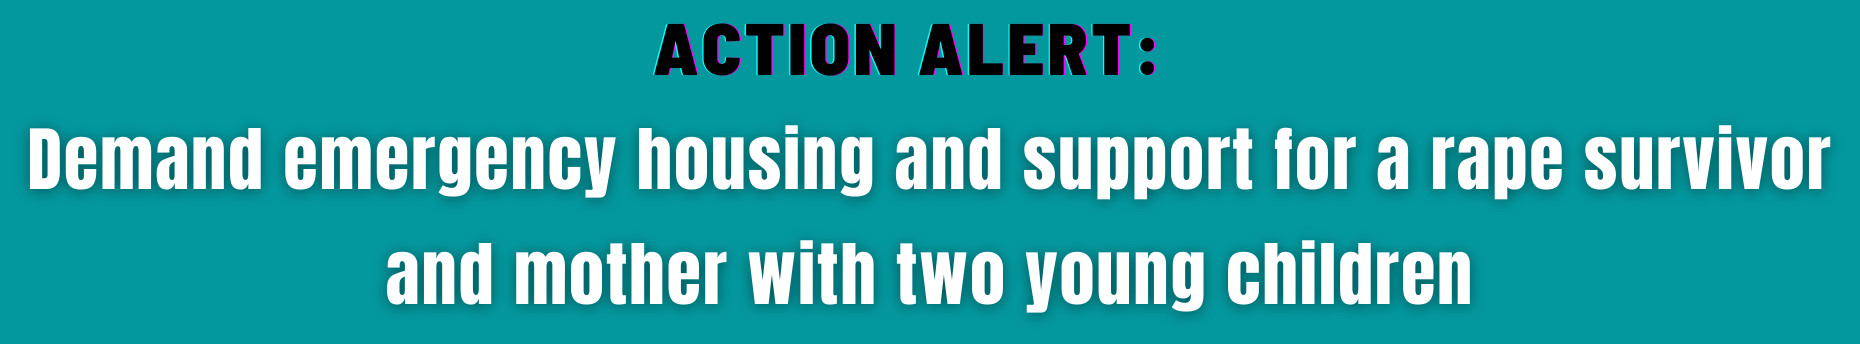 Demand emergency housing and support for a rape survivor and mother with two young children